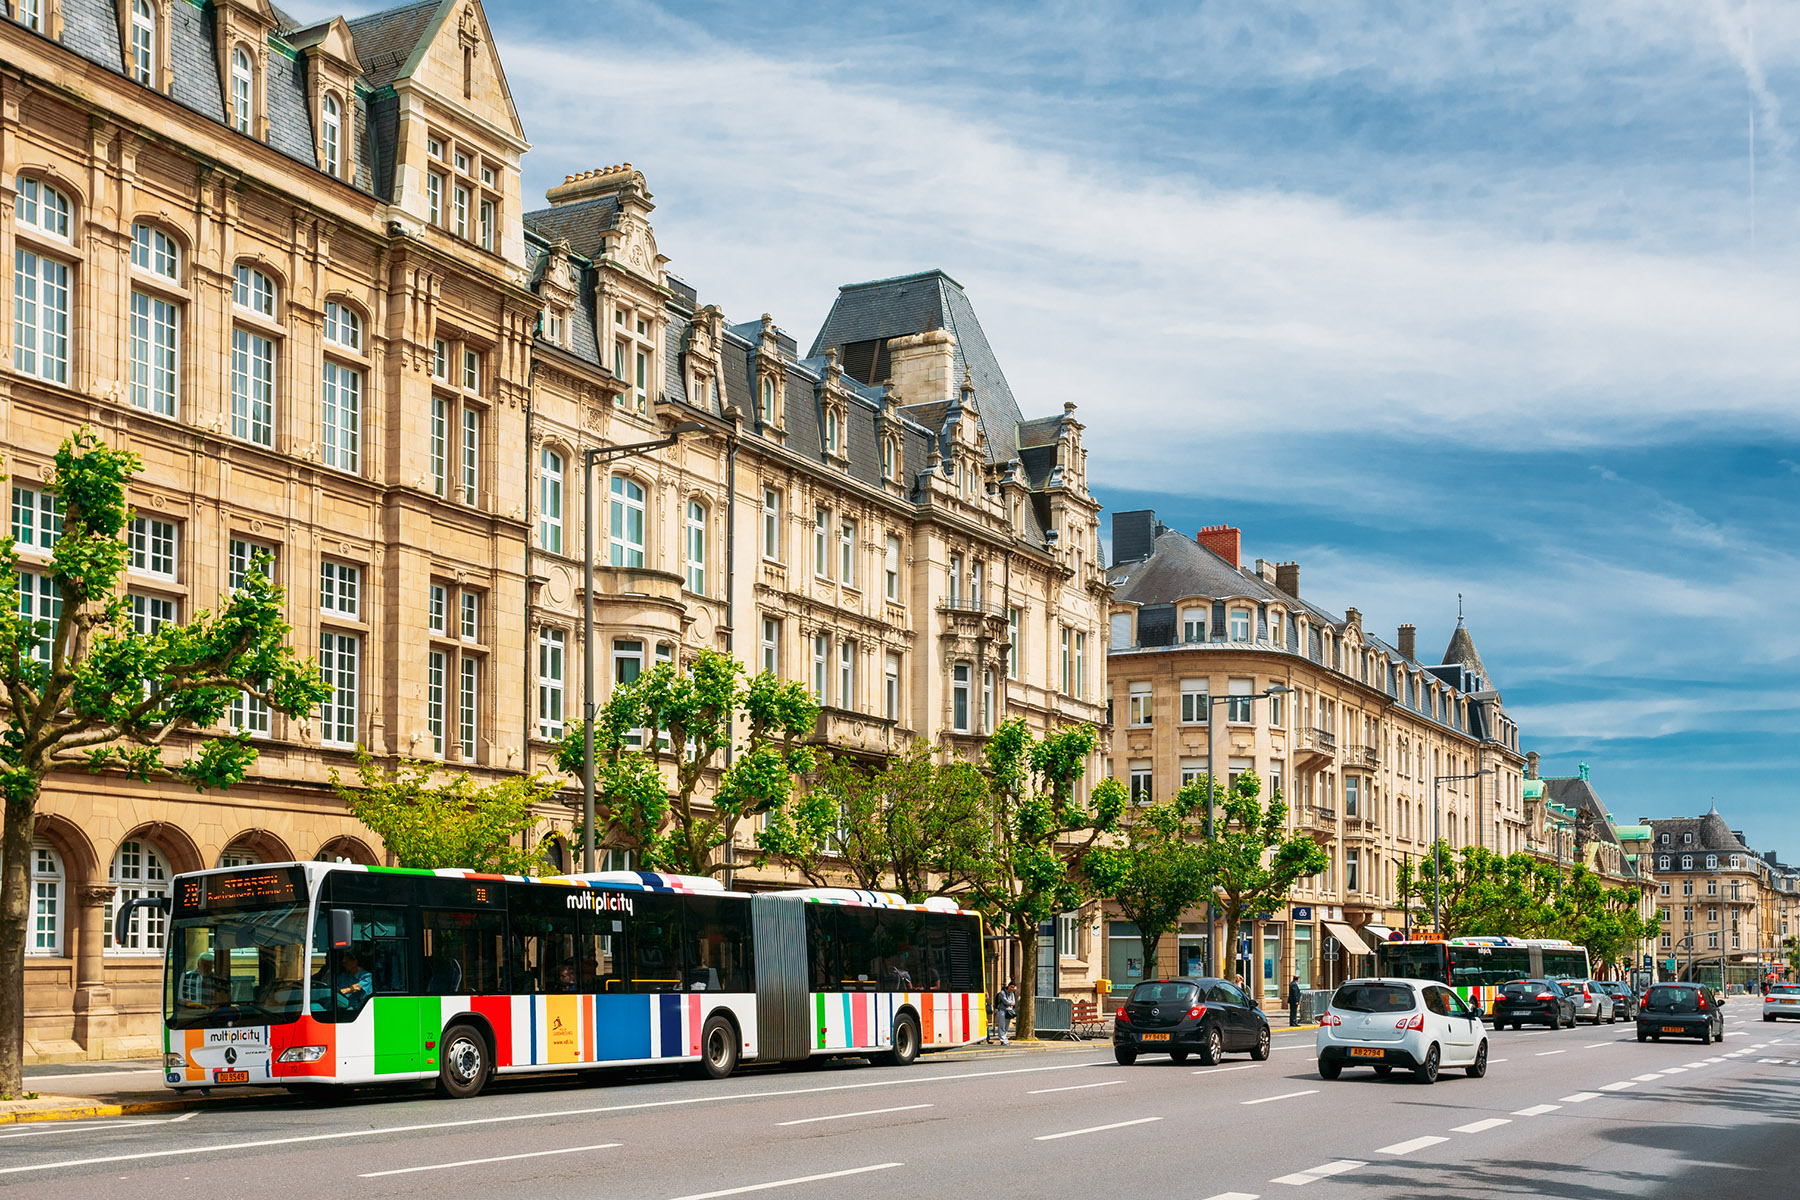 AVL bus in Luxembourg